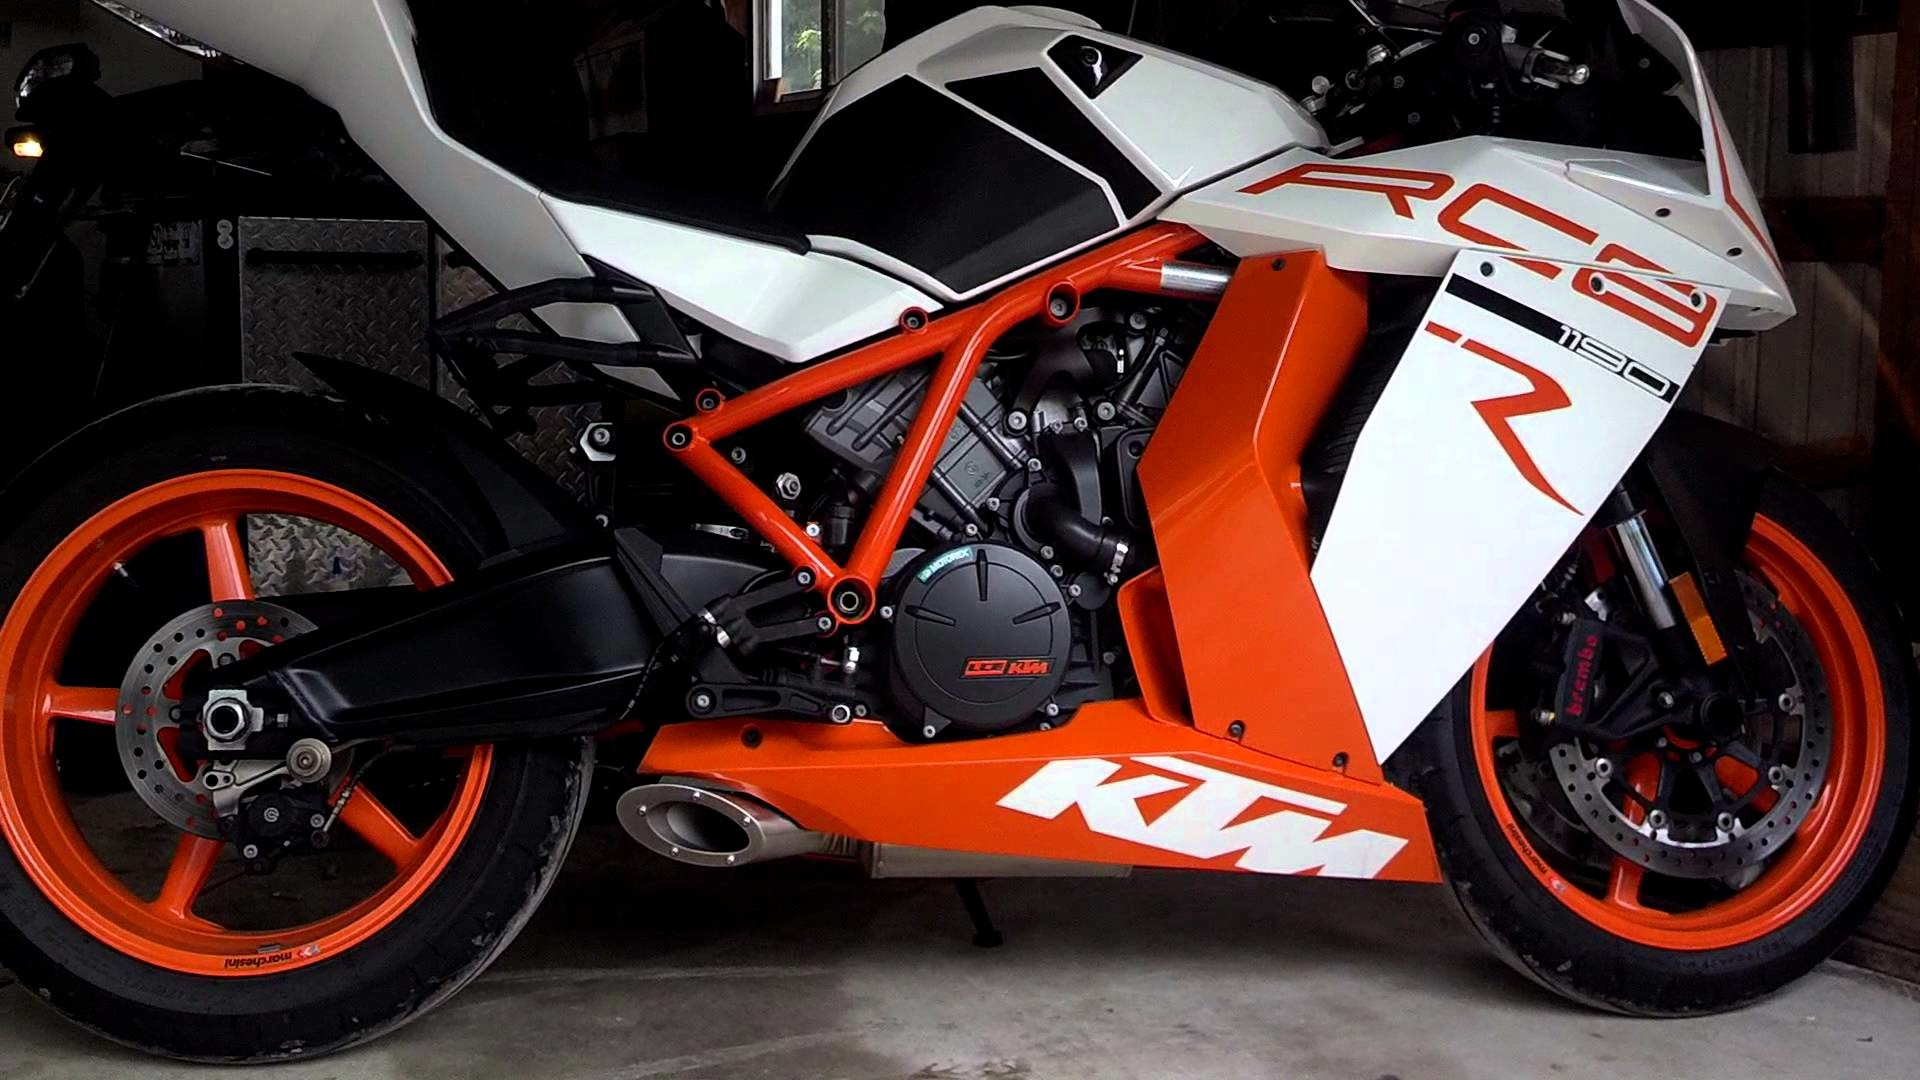 1920x1080 - KTM RC8 Wallpapers 11